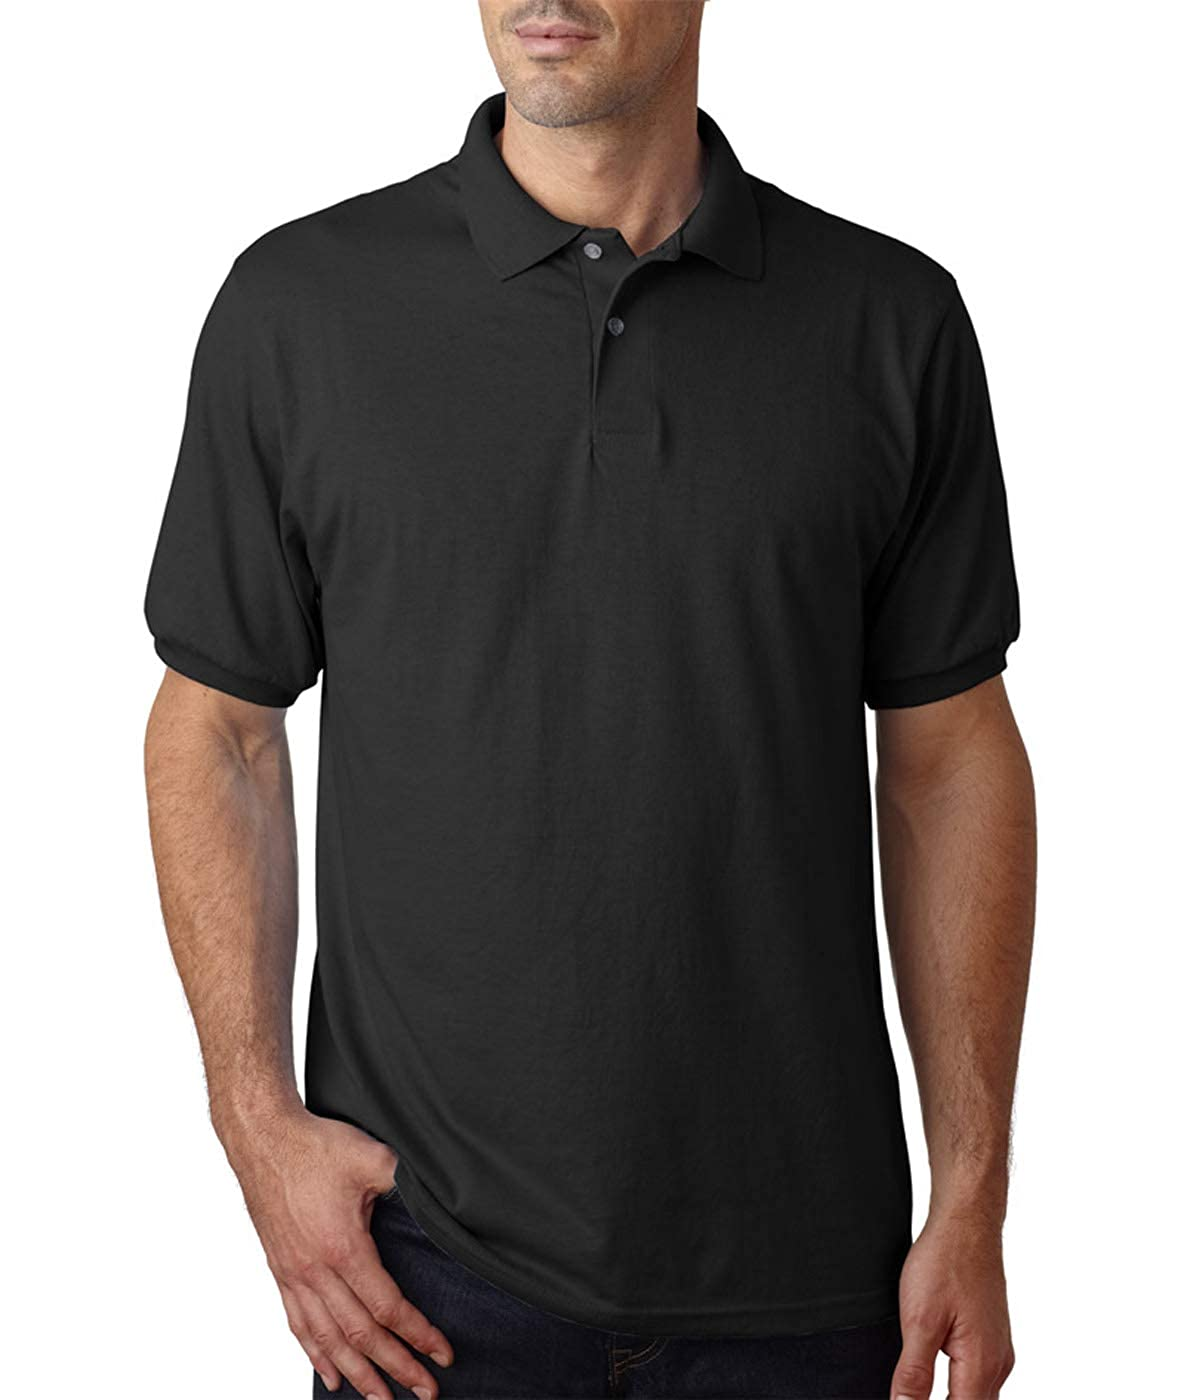 Hanes Cotton-Blend Jersey Mens Polo